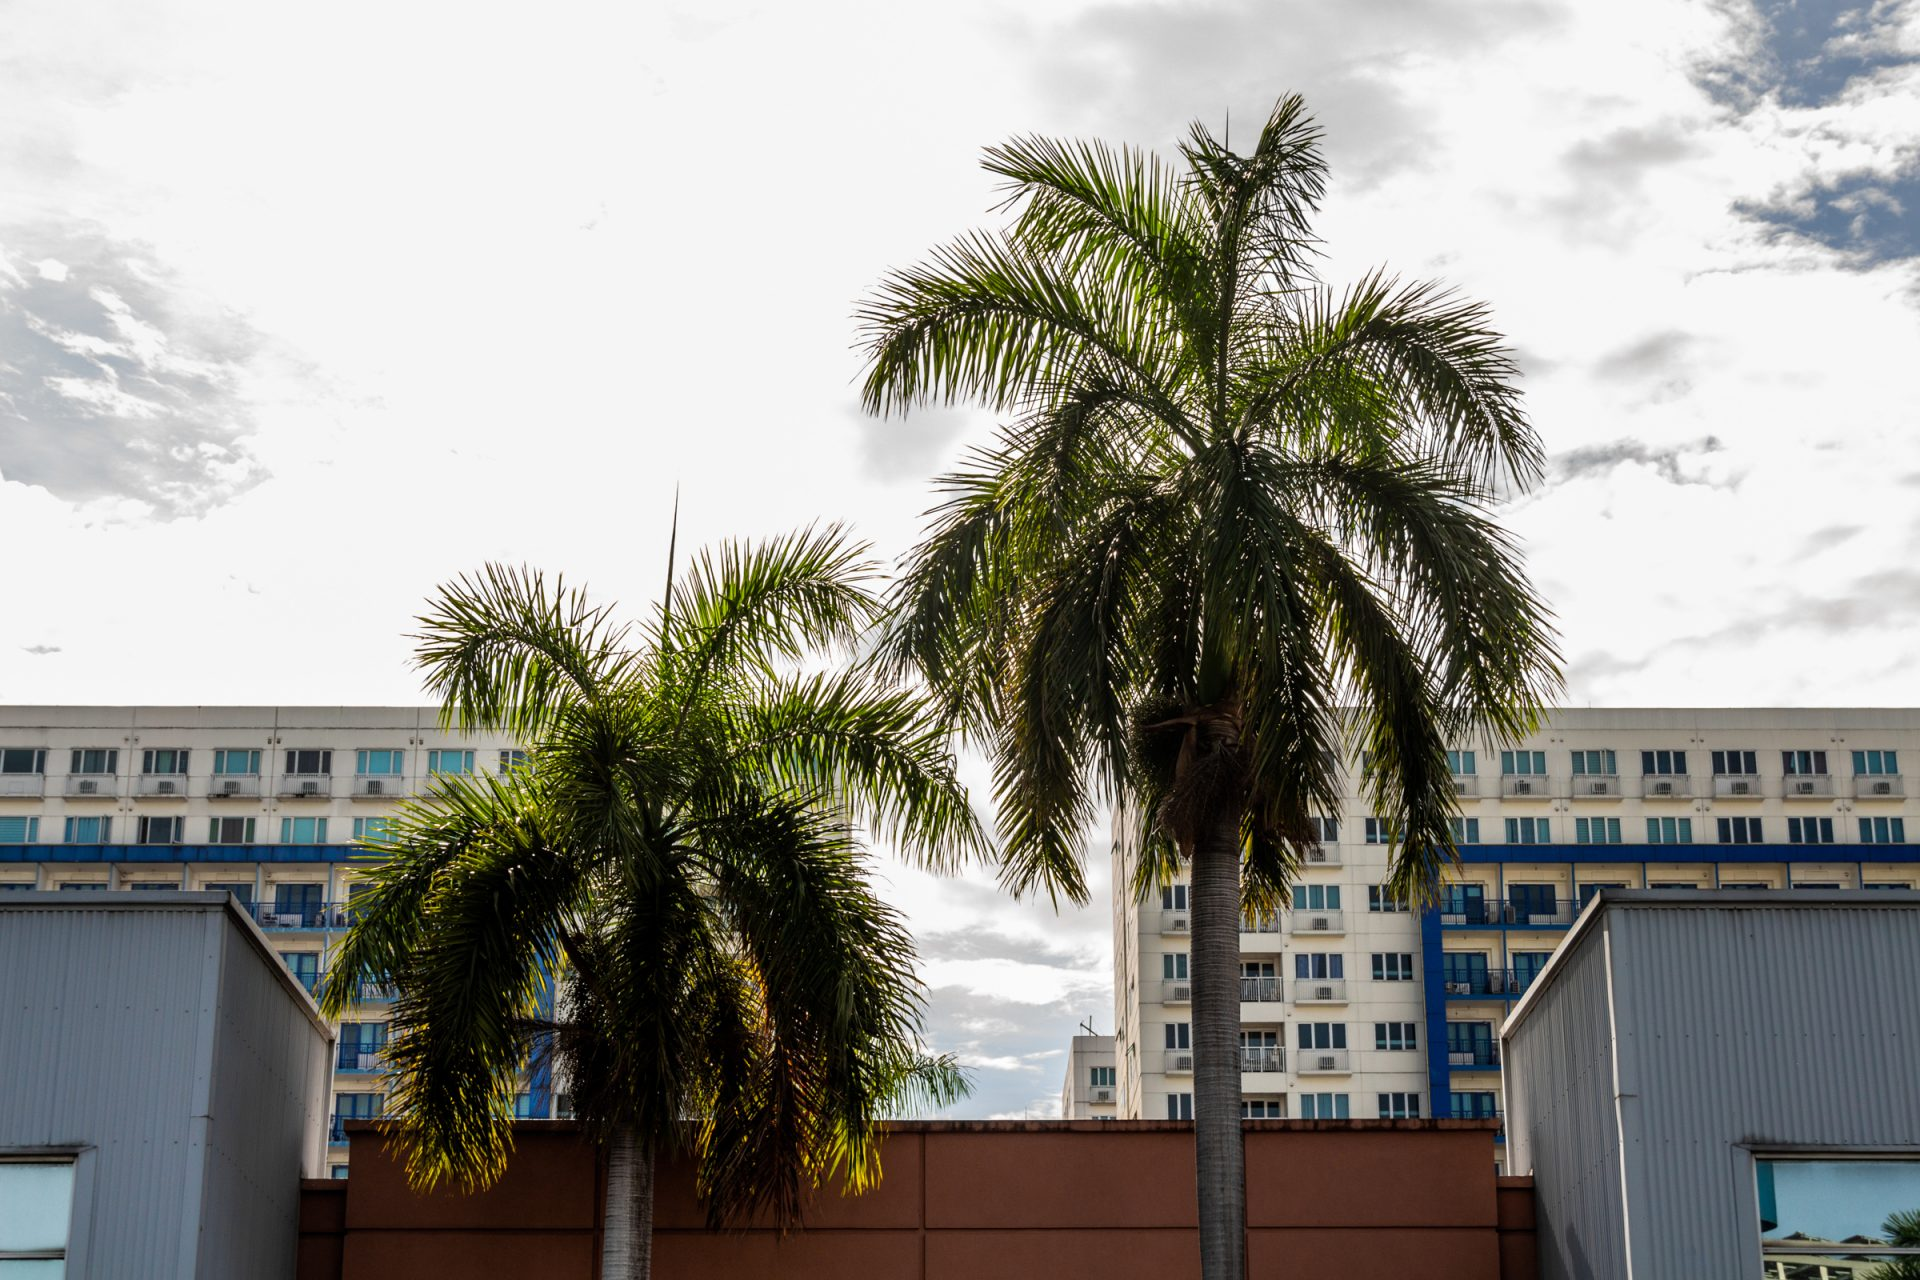 Buildings Behind Two Palm Trees